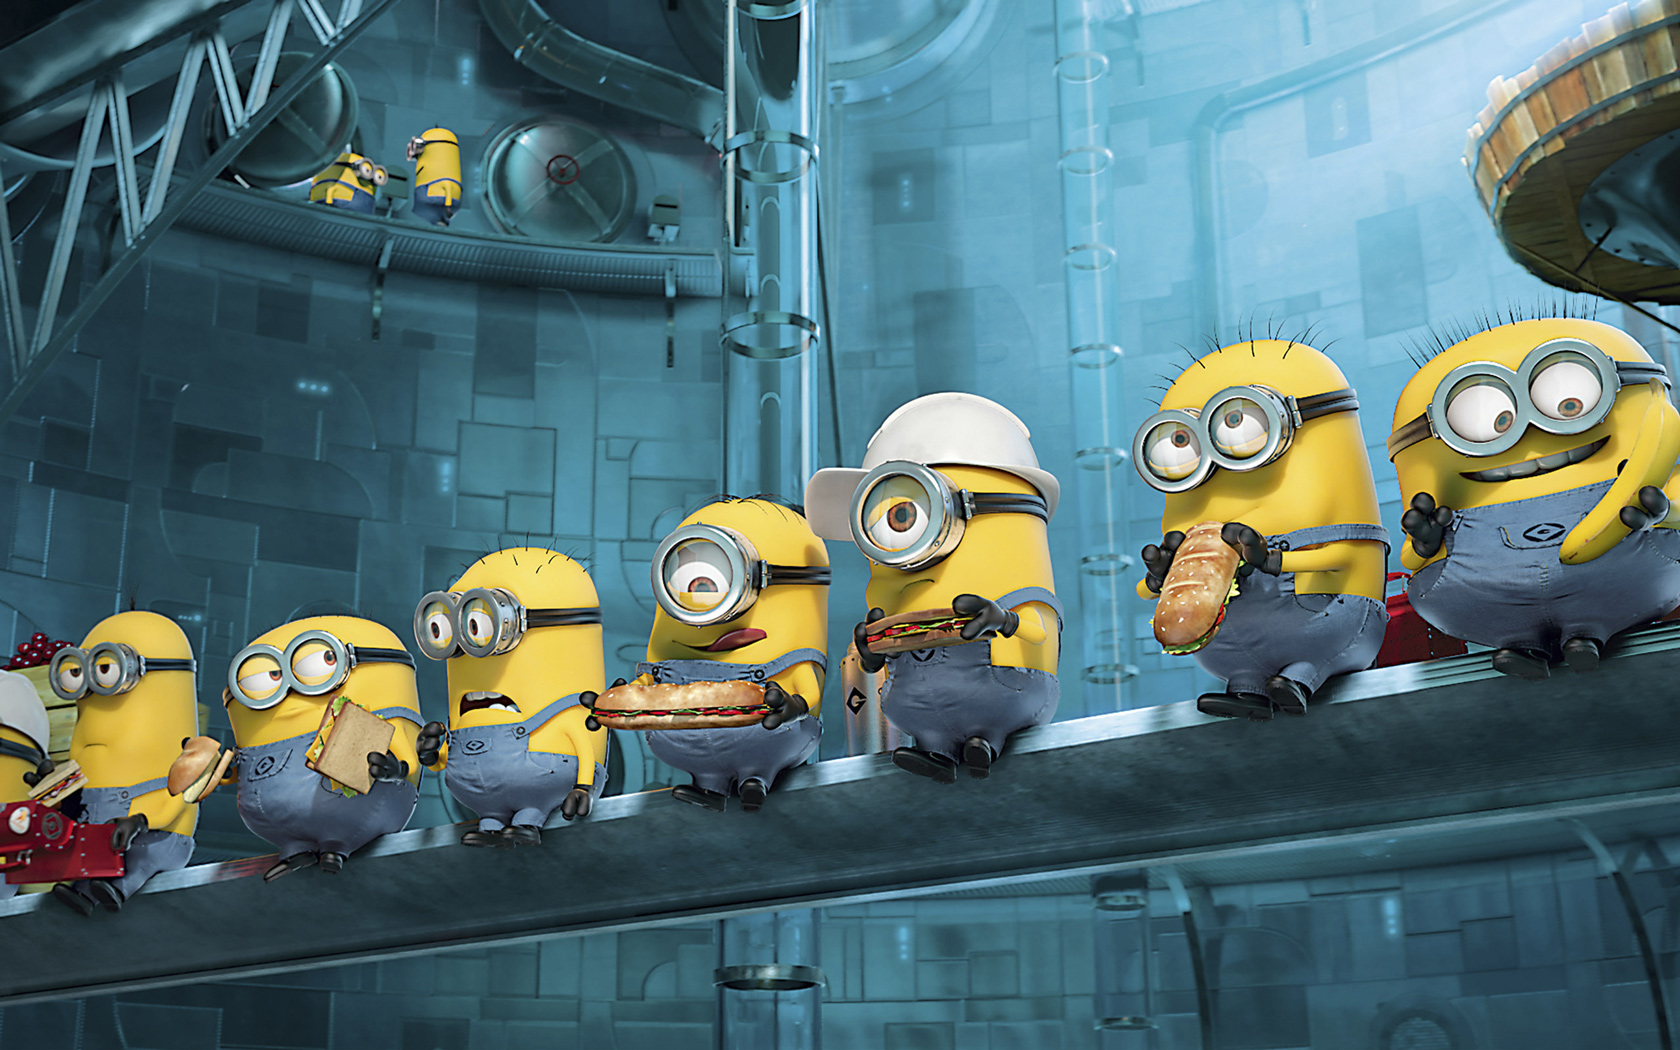 Wallpapers Minion Funny Backgrounds Of Minions Funnyminions 1680x1050